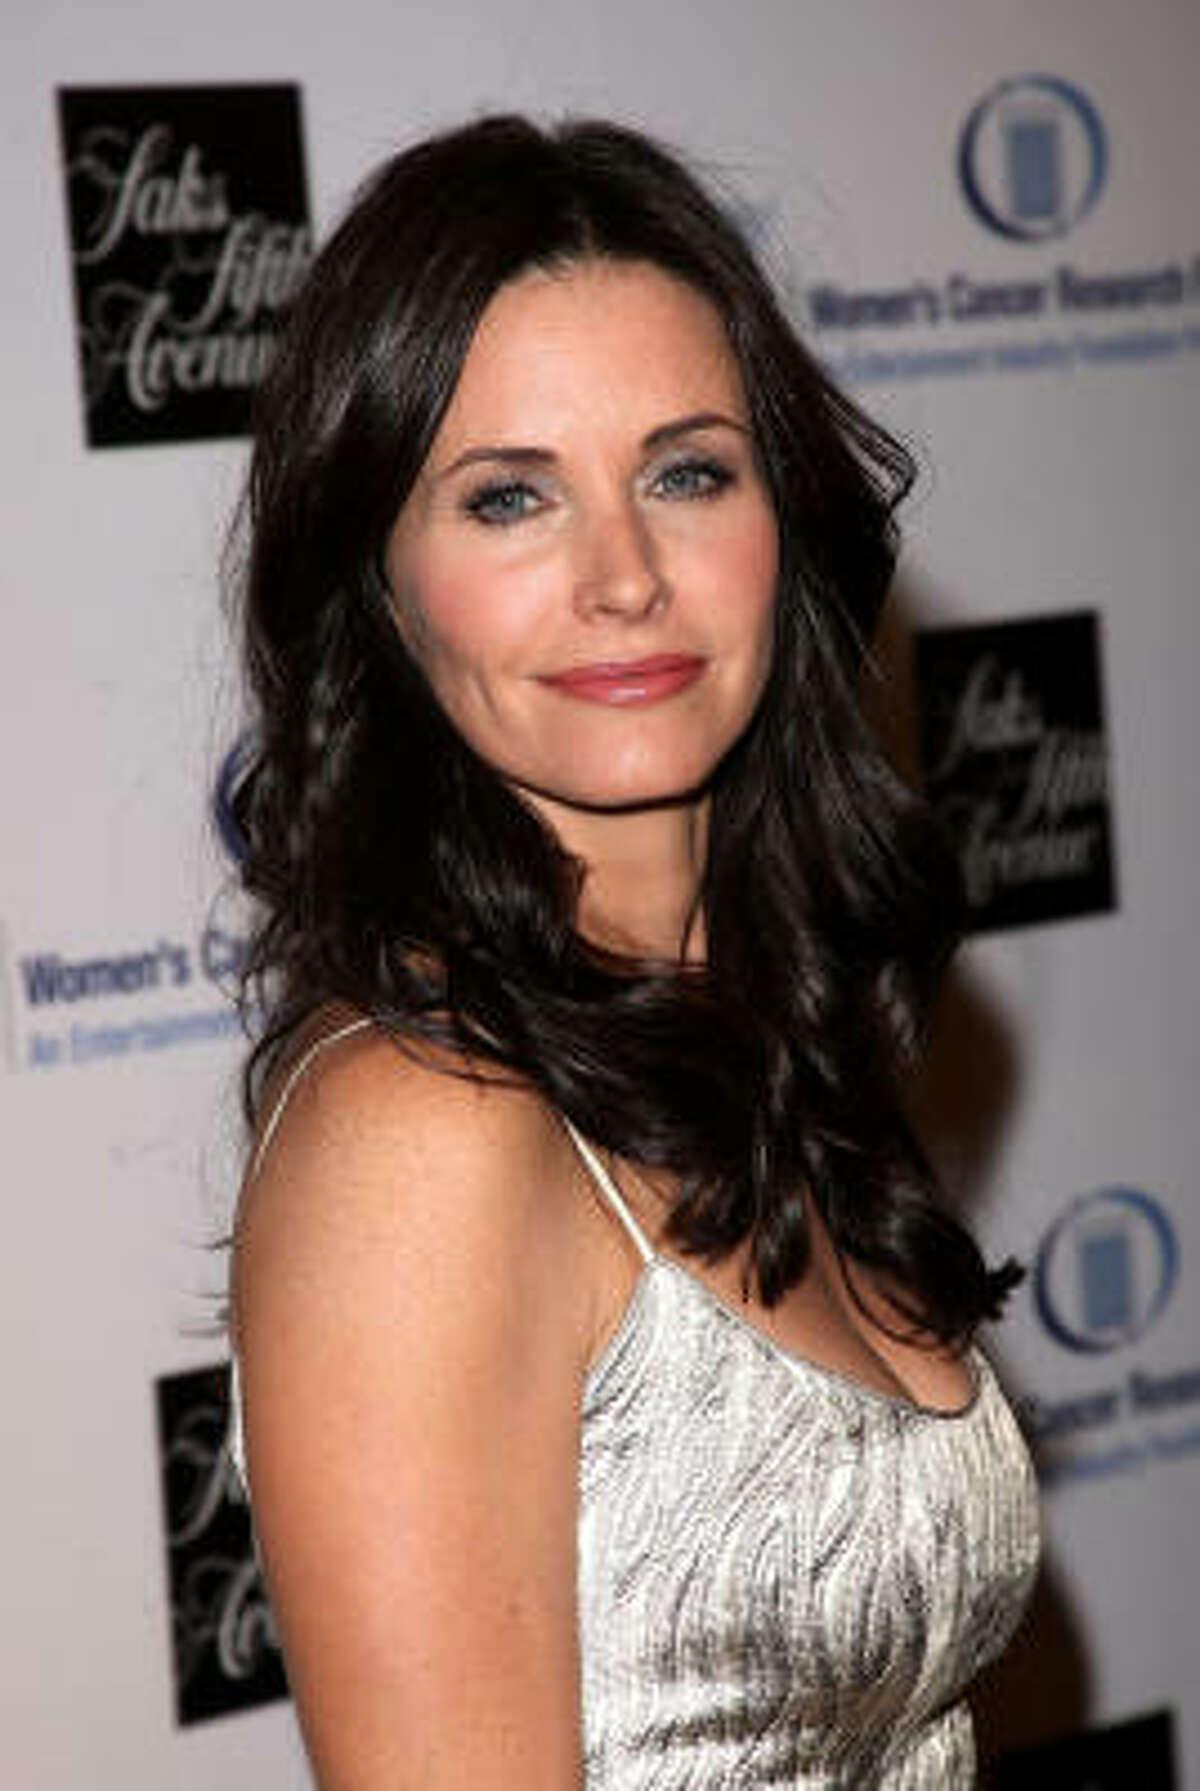 Courteney Cox-Arquette: Friends hot What's so wrong with being a cougar? At MomHouston.com.